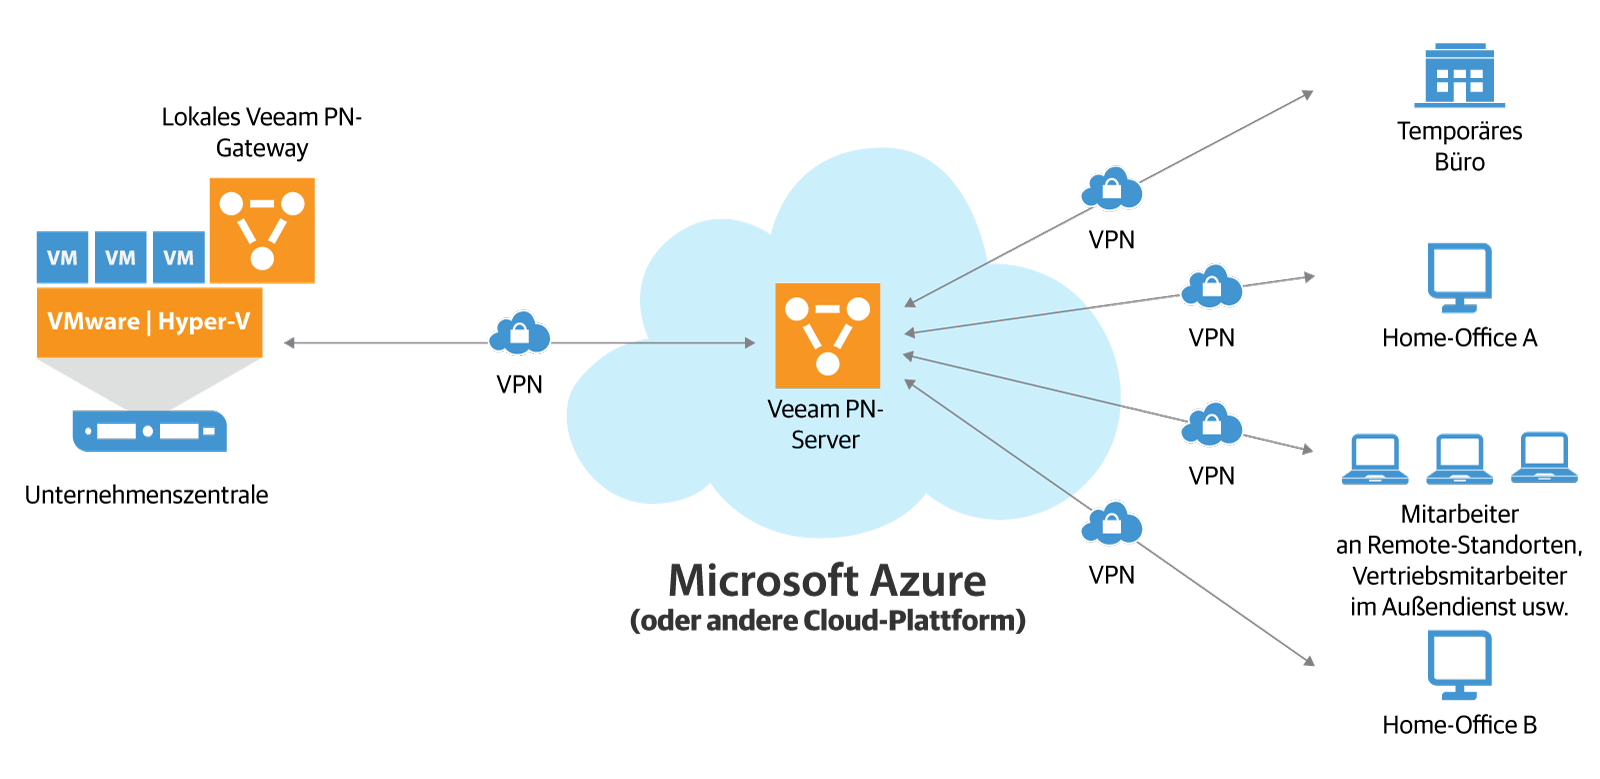 Veeam PN for Microsoft Azure ermöglicht einfache Punkt-zu-Punkt-Verbindungen zwischen Remote-Clients und der Unternehmenszentrale (VPN = Virtual Private Network, Veeam PN = Veeam Powered Network).